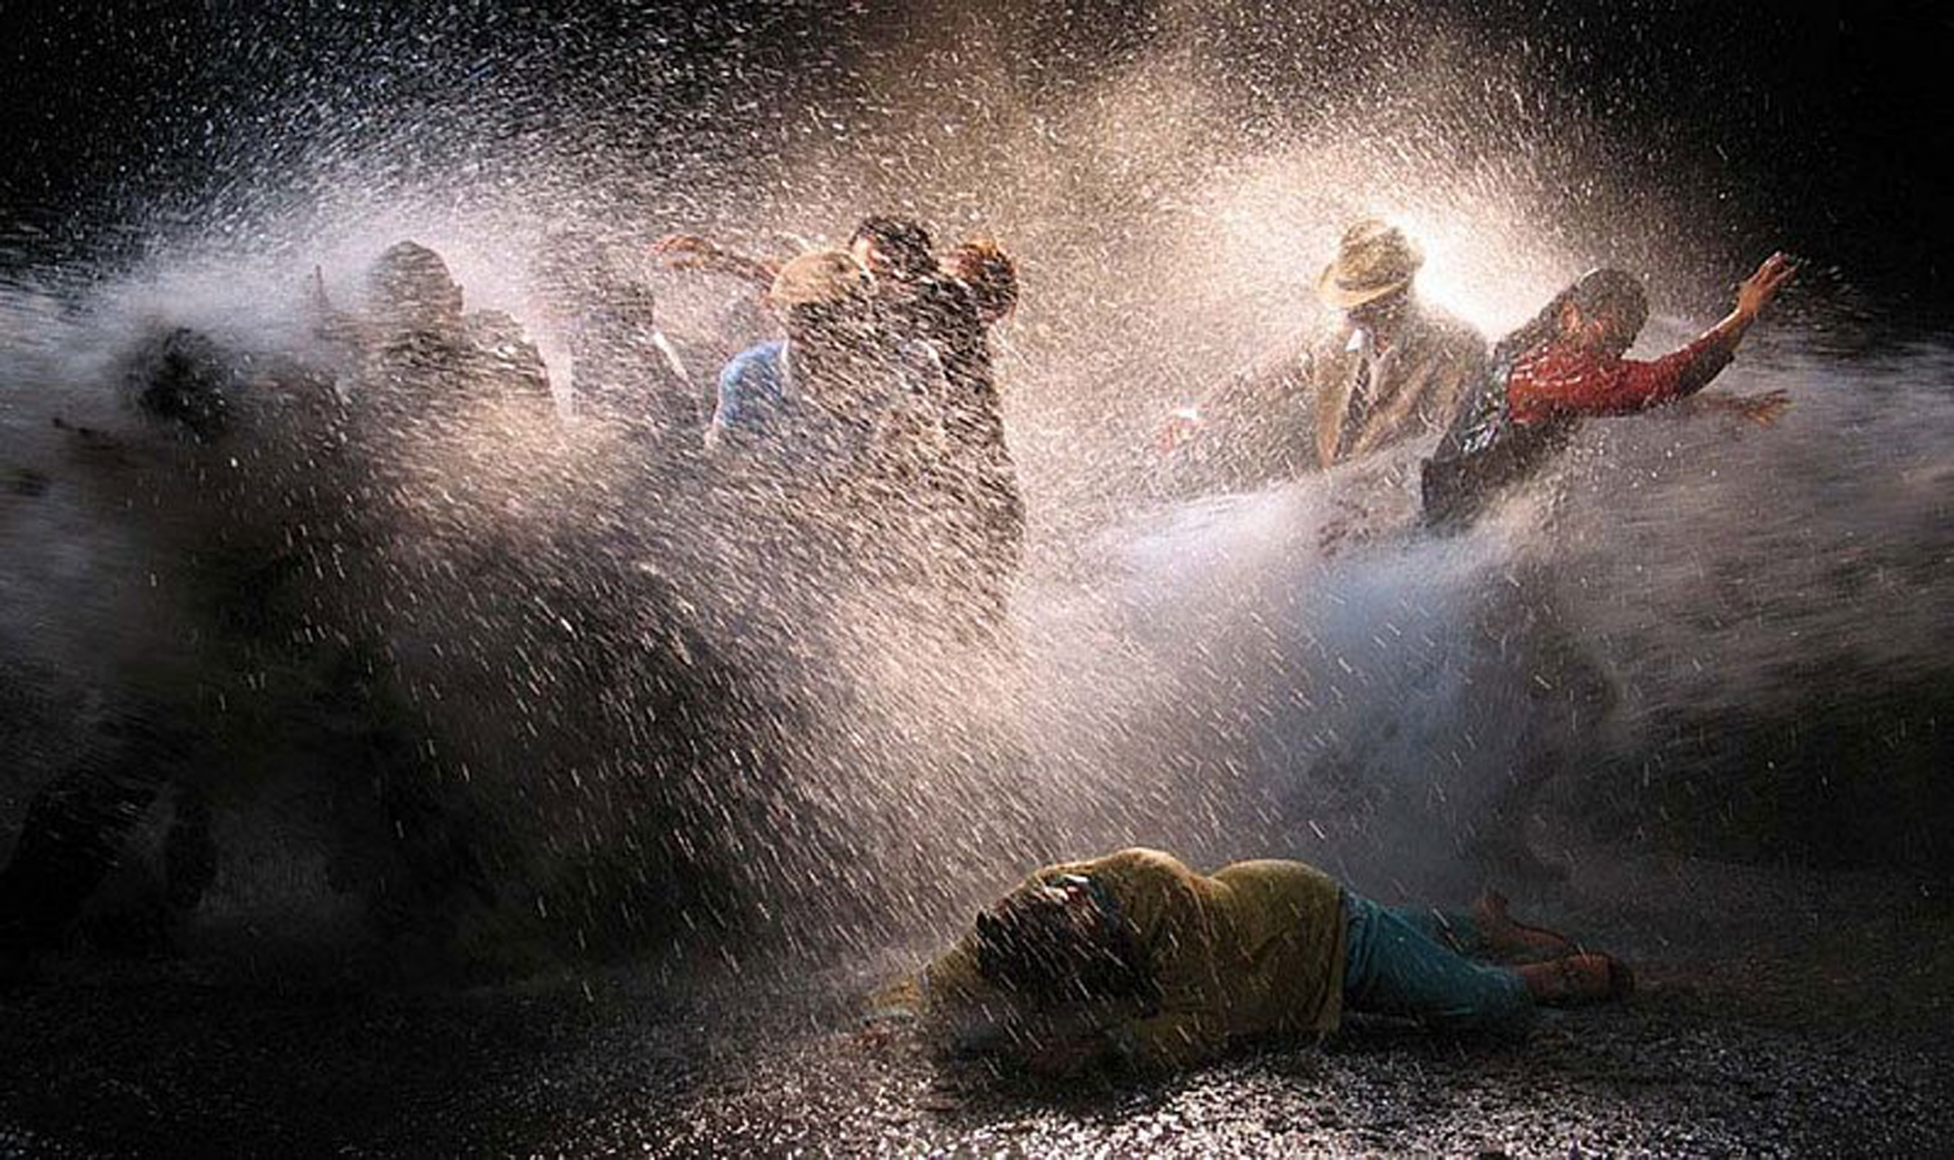 Bill Viola, The Raft, 2004, color high-definition video projection on wall, 156 × 87 4/5 in